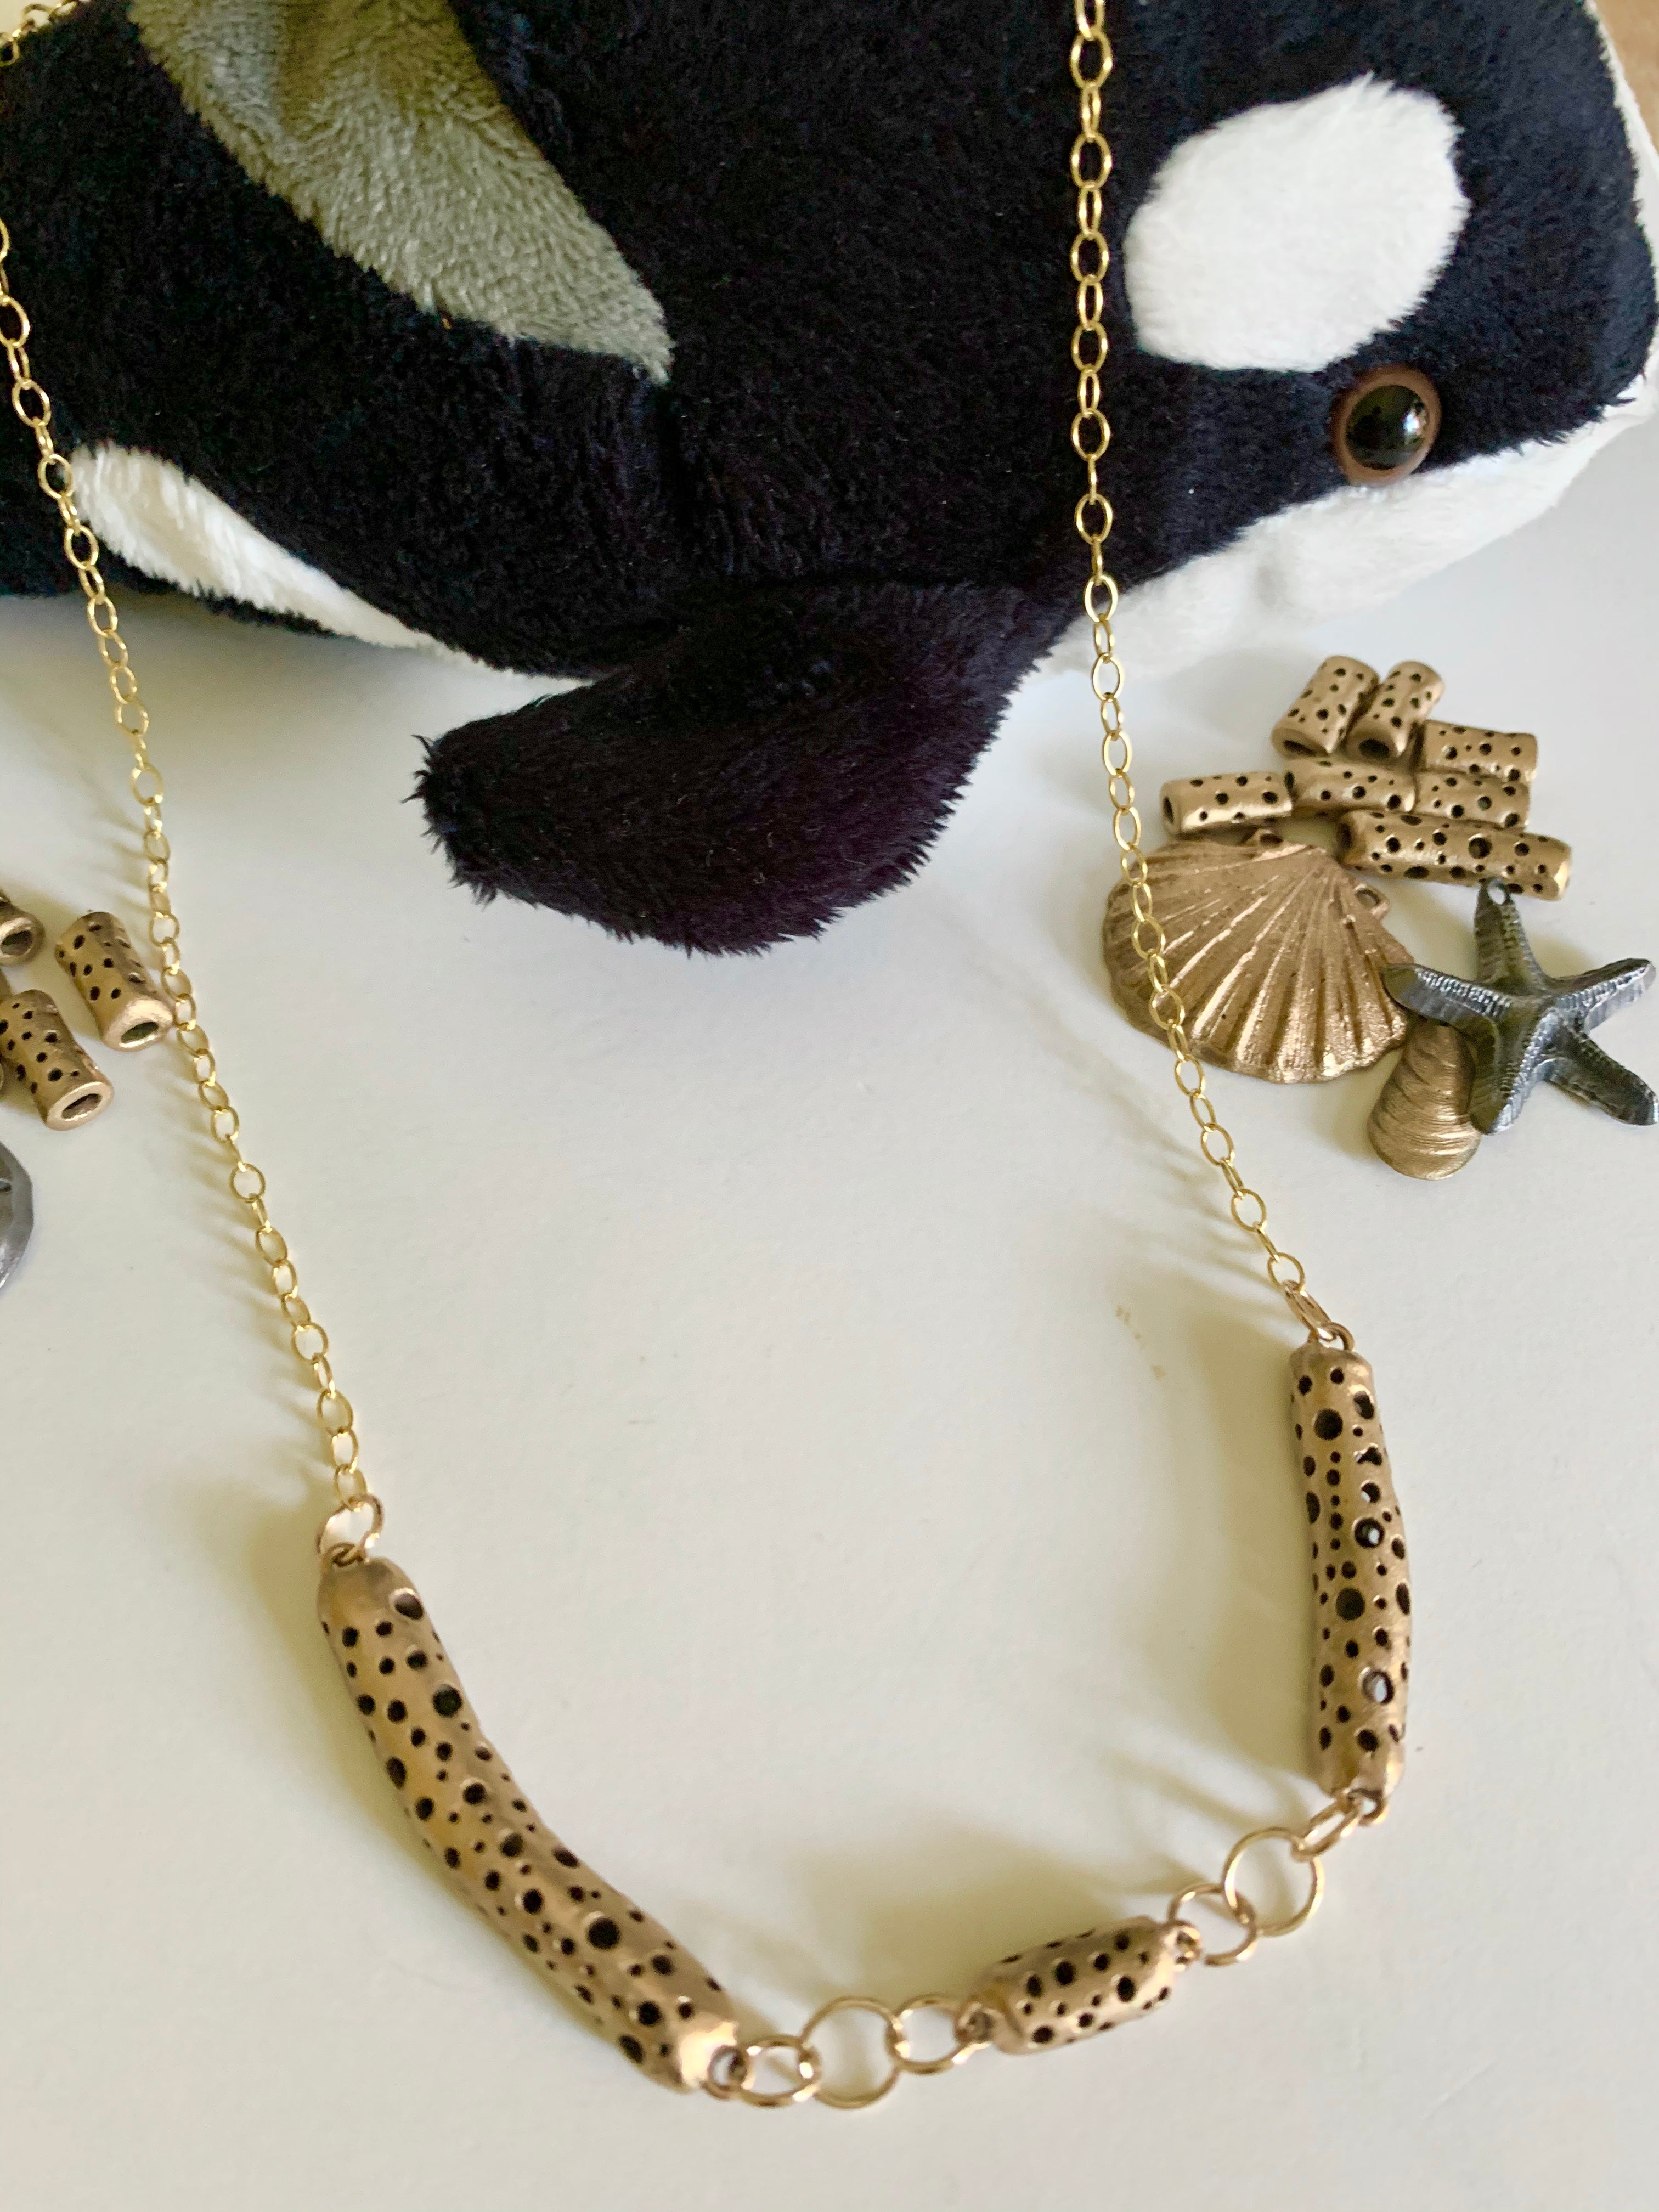 Orca and bronze bead organic yet classic necklace